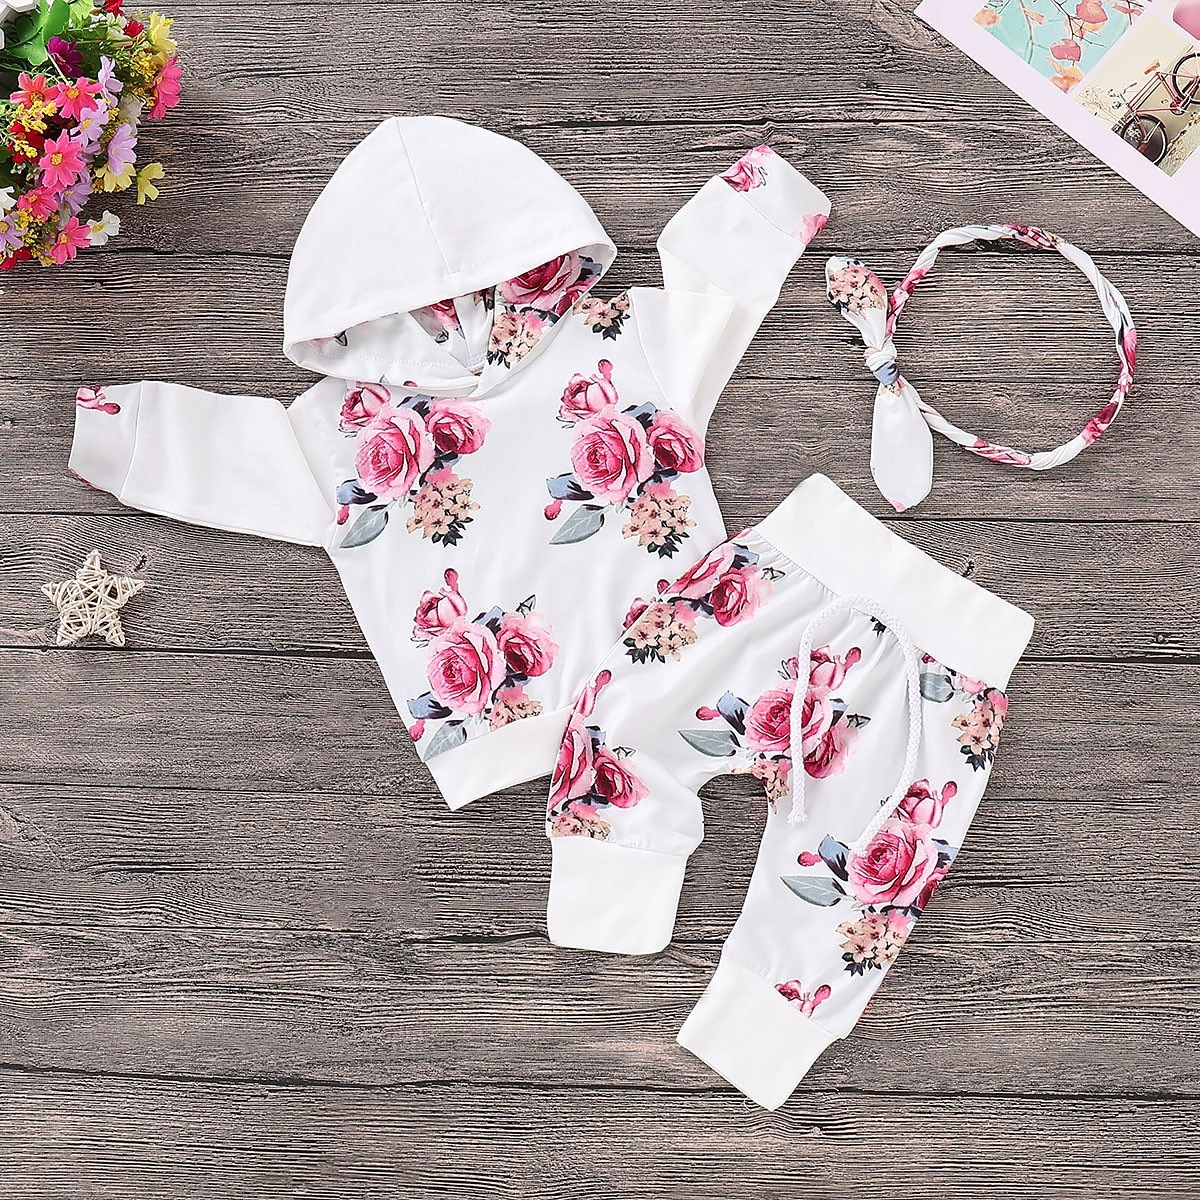 3Pcs Trendy Baby Clothes Set Flower Long Sleeves Tshirt+Pants Set for Baby Newborn